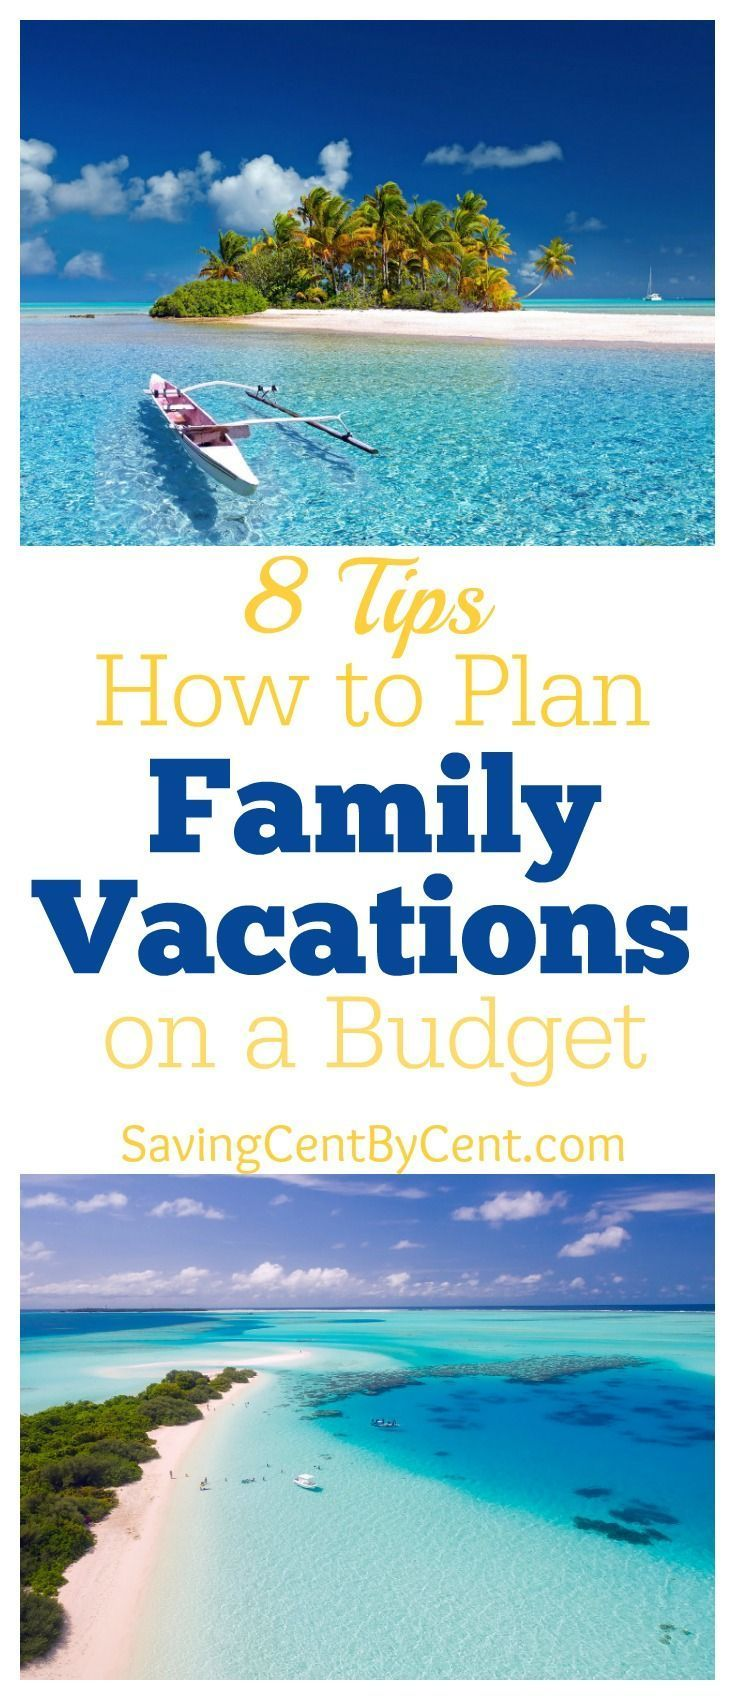 8 Tips How To Plan Family Vacations On A Budget